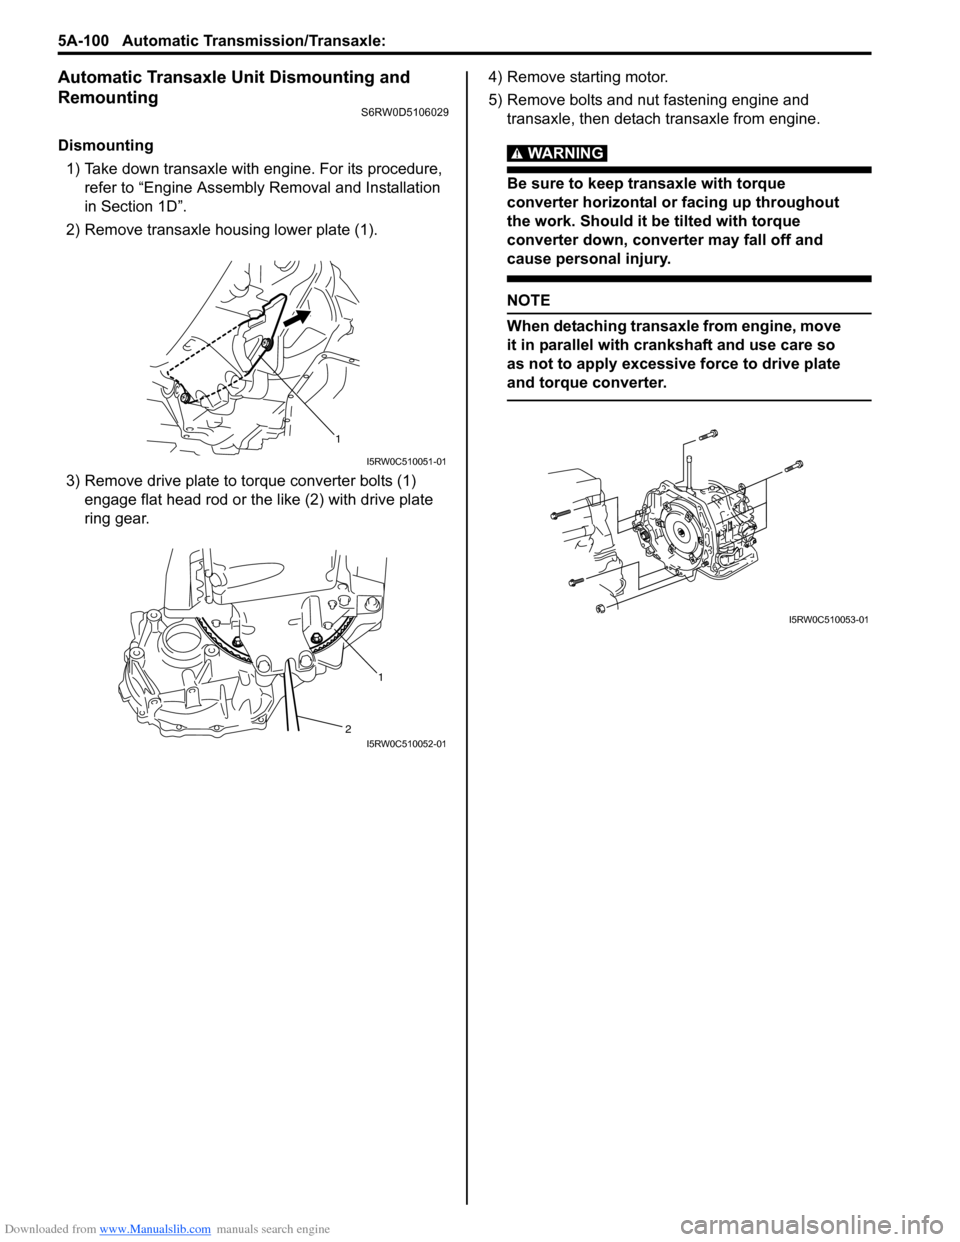 SUZUKI SX4 2006 1.G Service Workshop Manual, Page 748